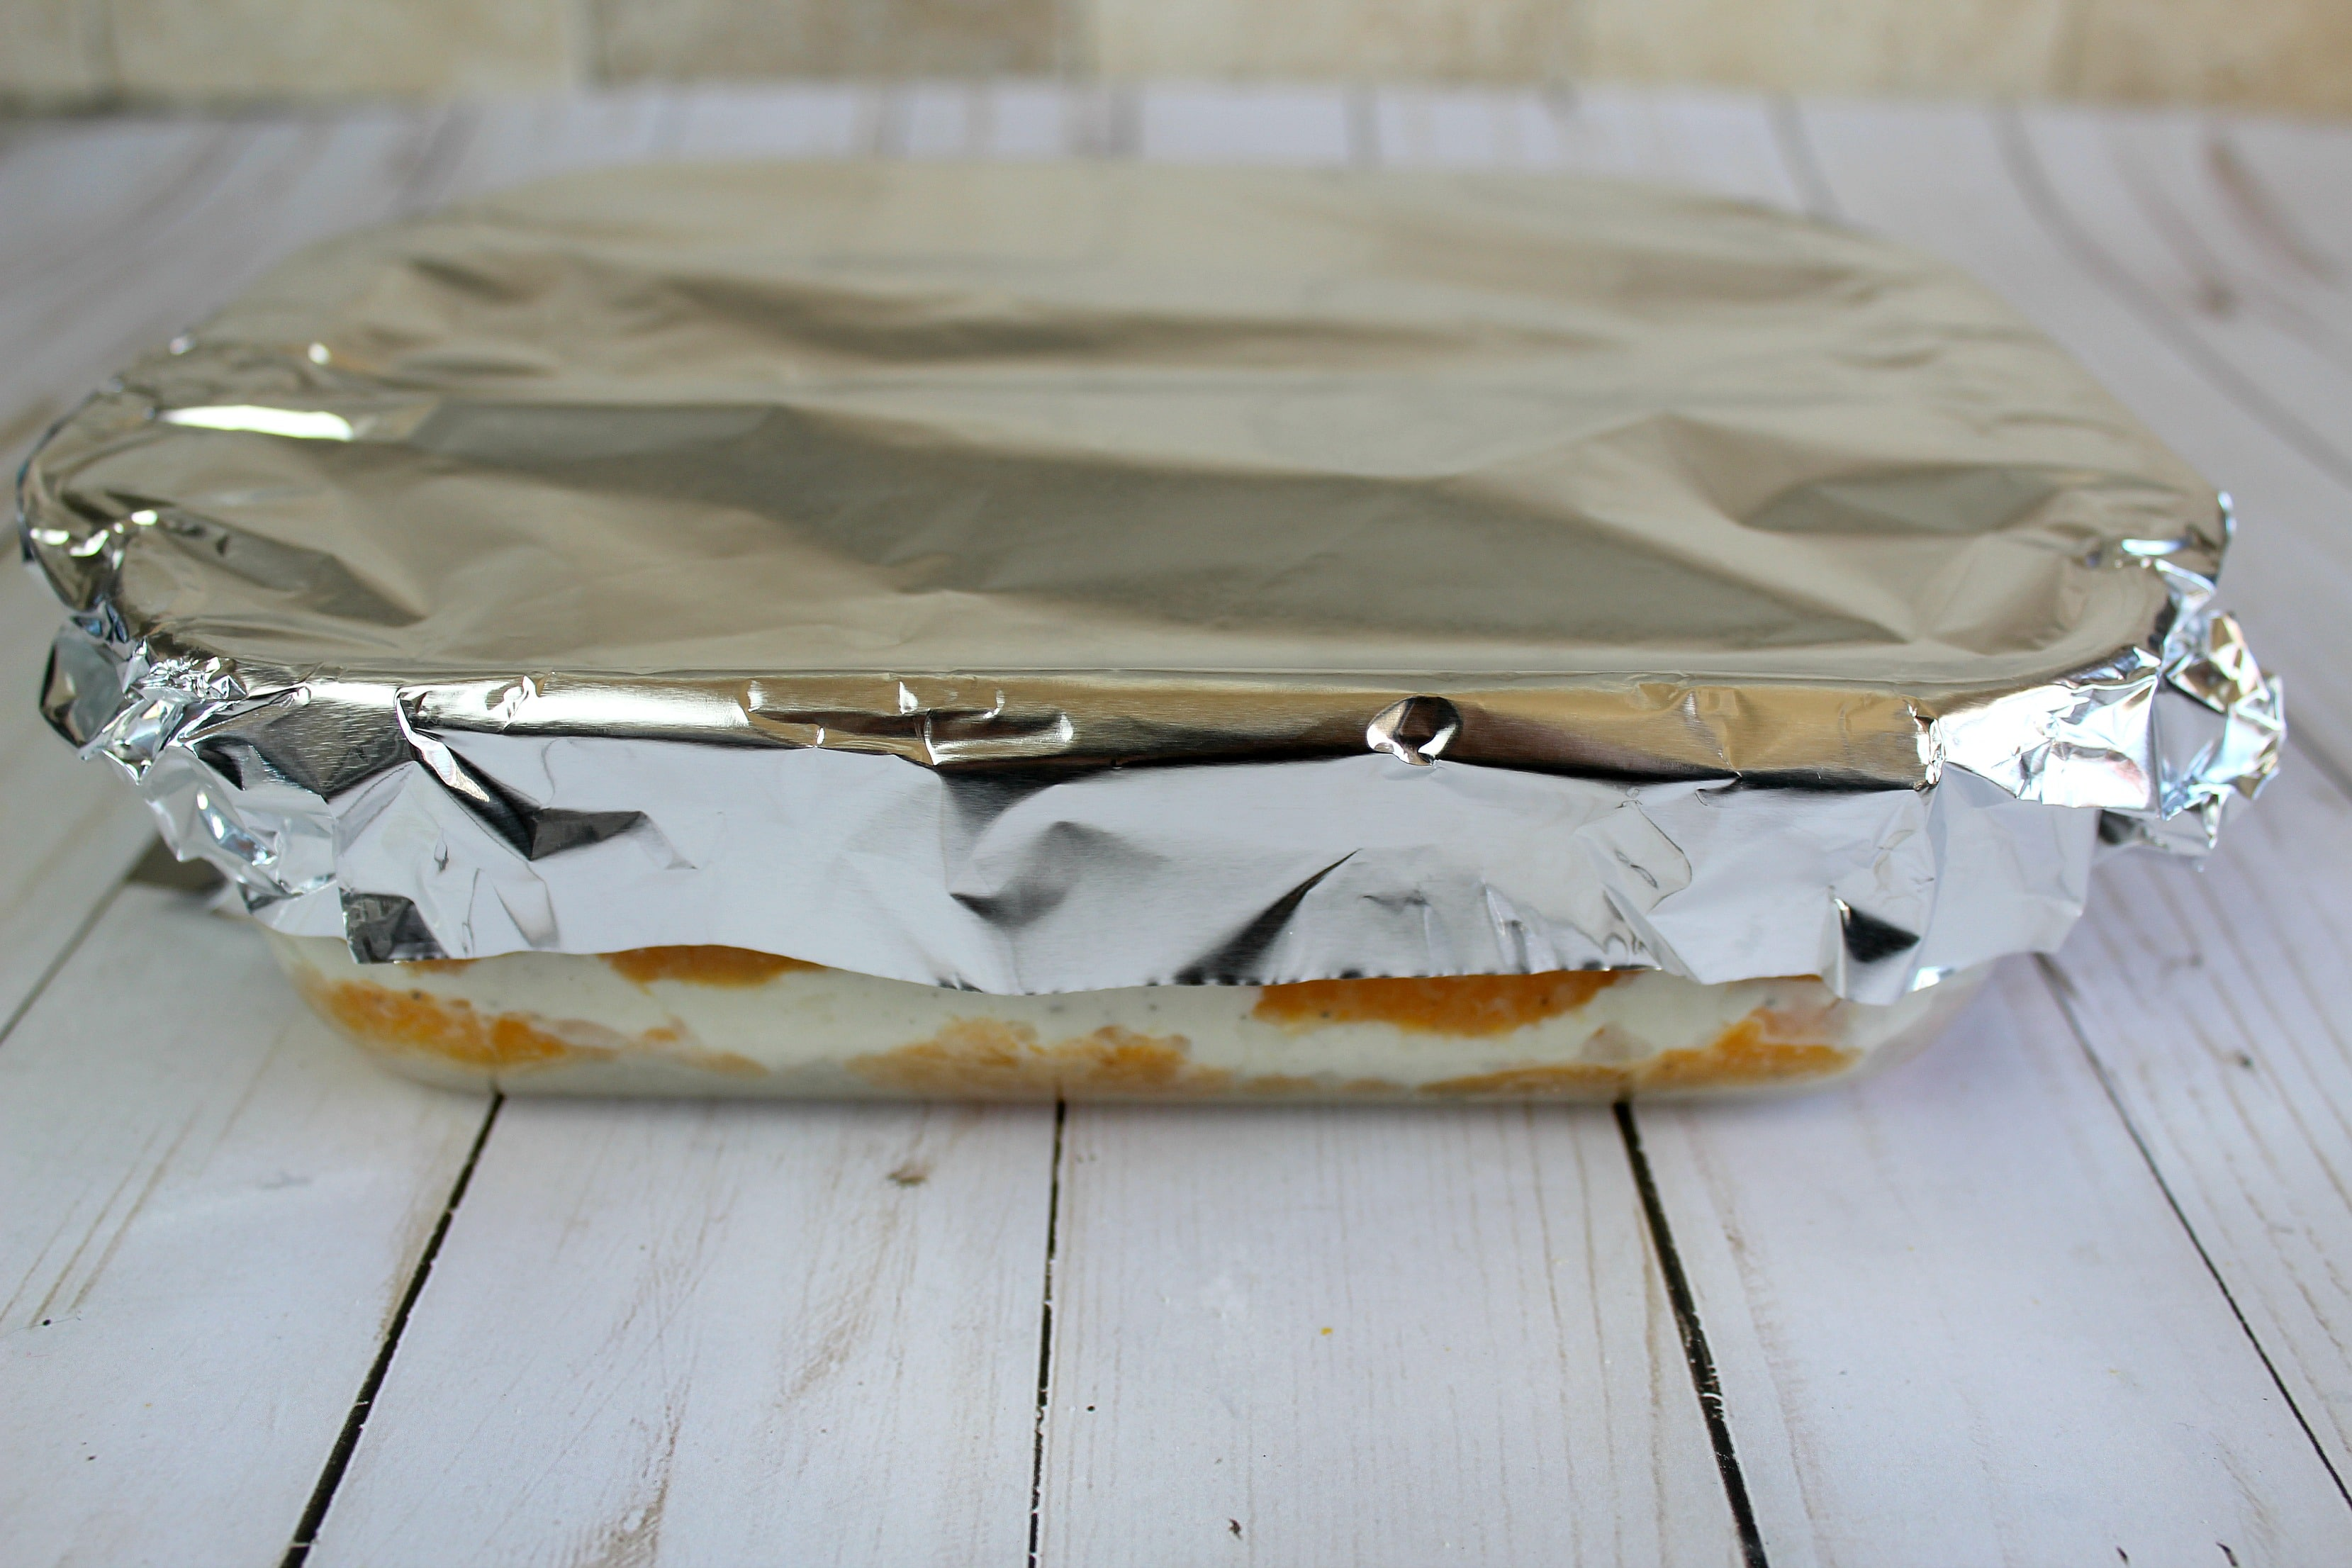 Cover the lasagna with foil before cooking.